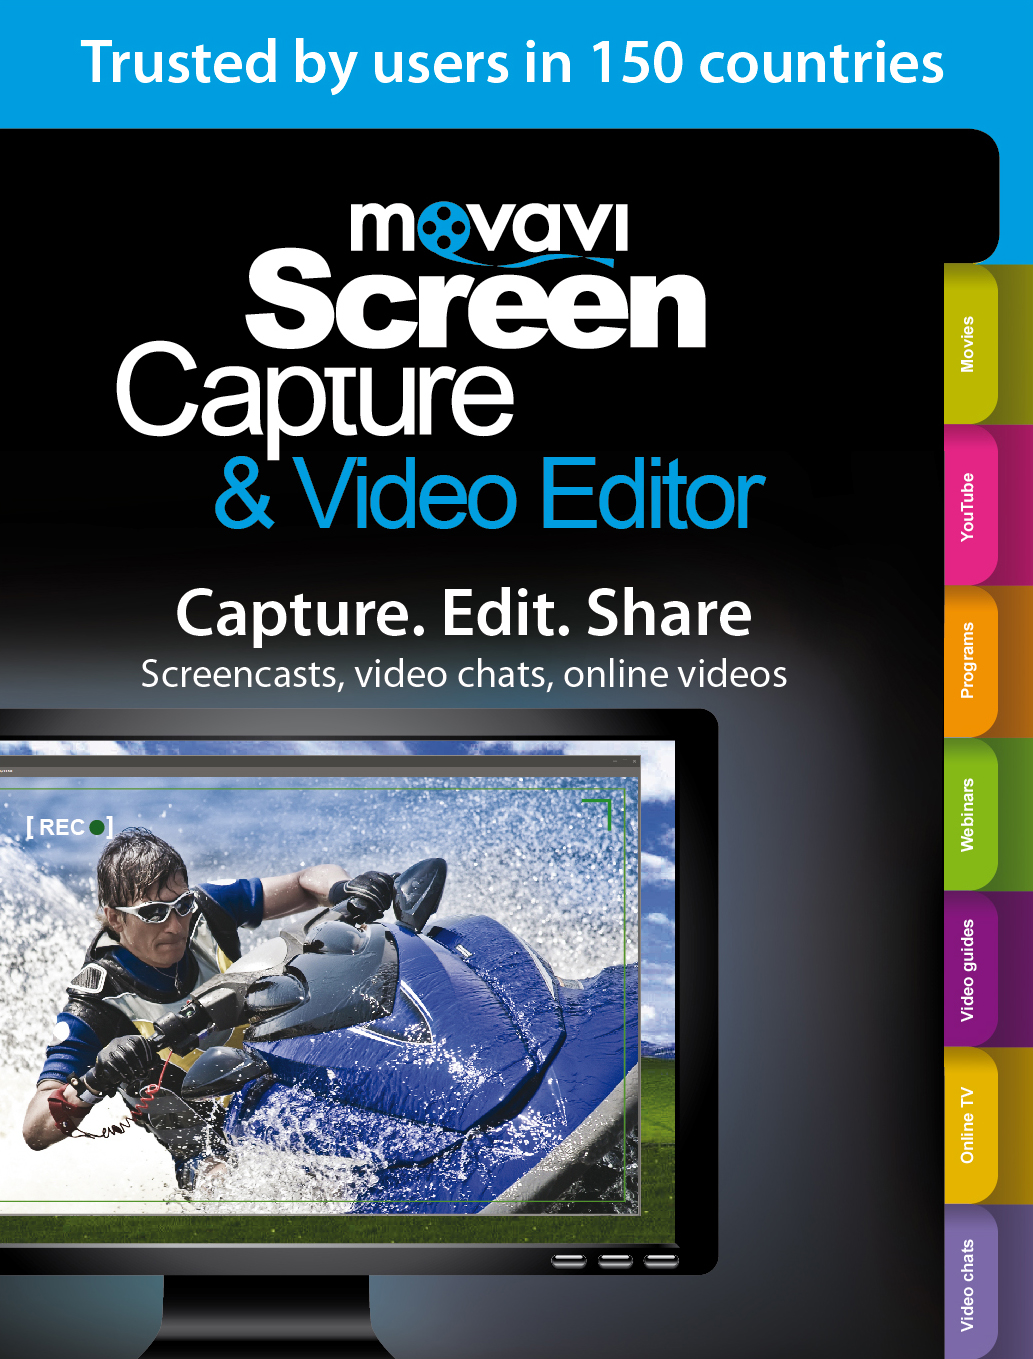 movavi-screen-capture-video-editor-8-personal-edition-download